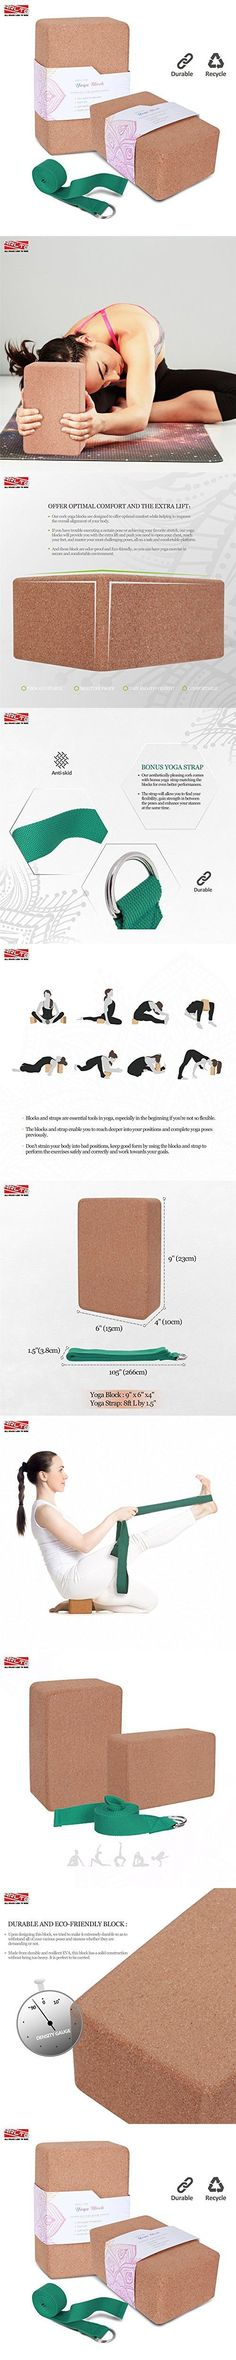 "ARLTB Cork Yoga Block 2 Pack and yoga Strap Set with Metal D-Ring 4""x6""x9"" Cork Yoga Bricks and 8"" Yoga Strap Natural and Sustainable Material for Any Type of Yoga Styles (Cork Yoga Block, 4""x6""x9"")"